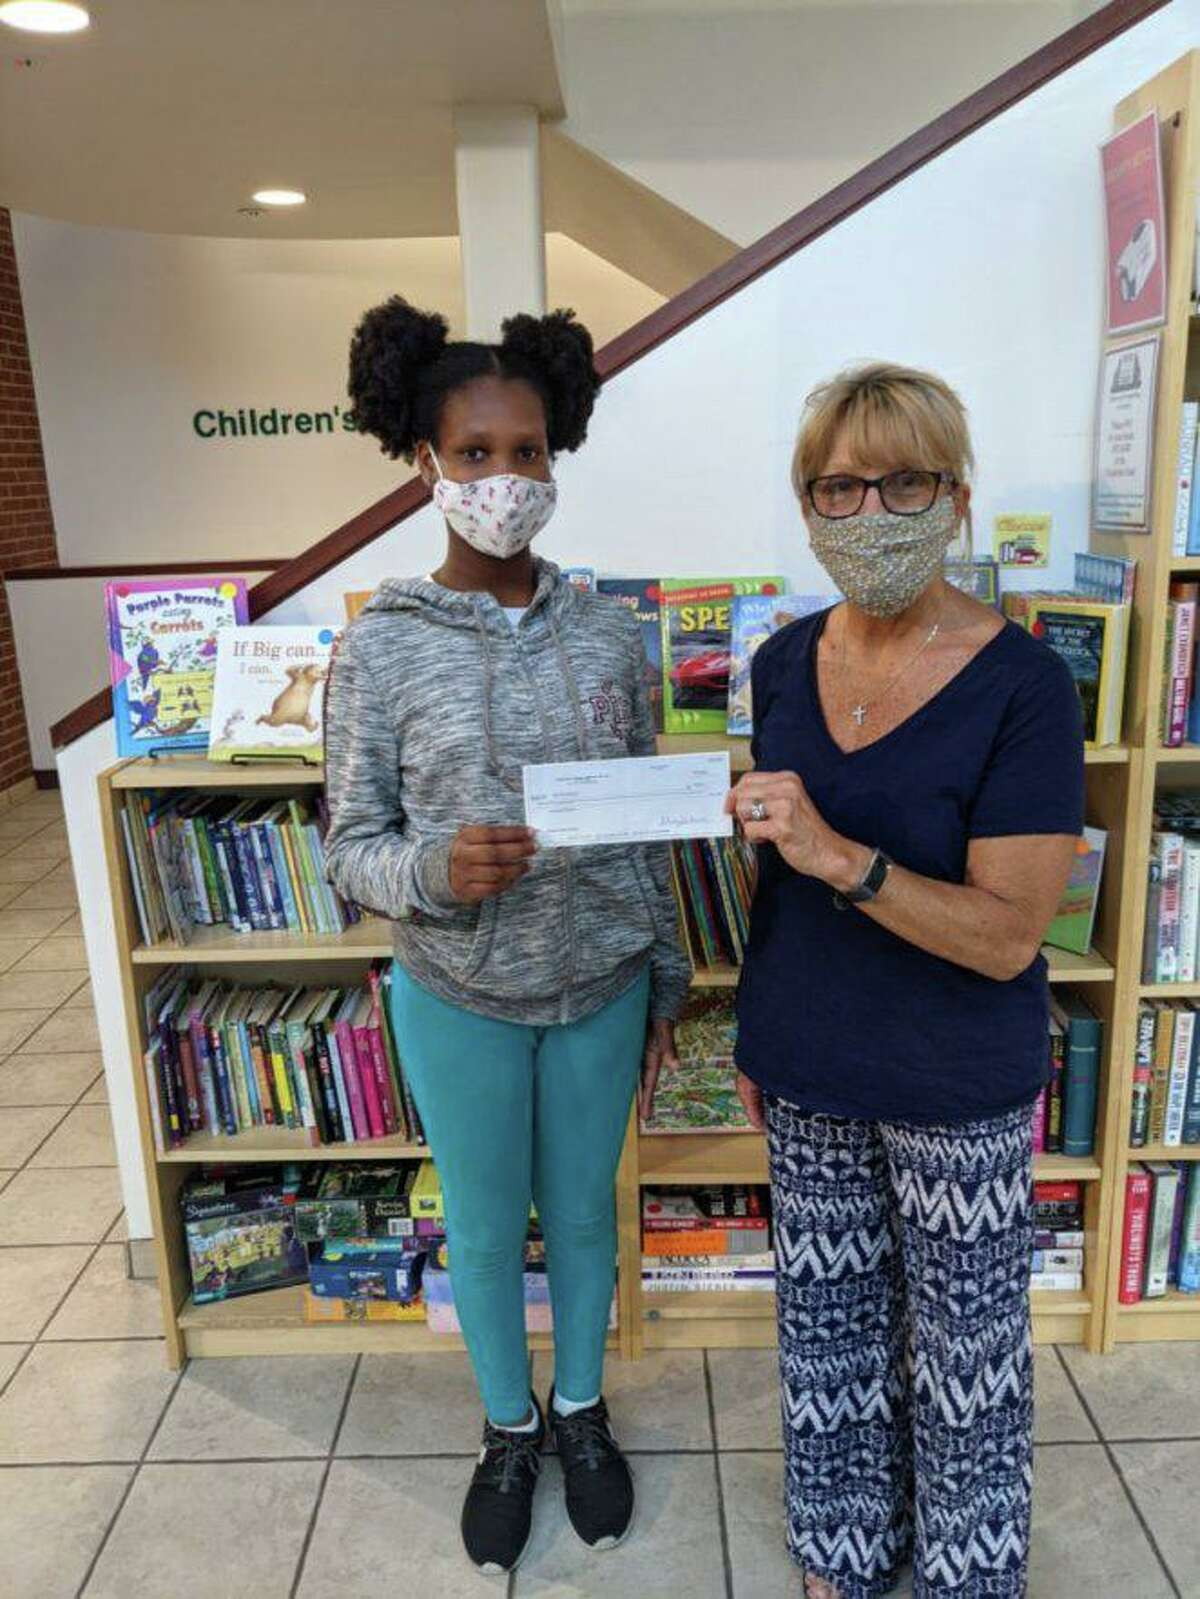 North Haven Garden Club Youth Chair Cindy Golia presented a $25 check to Savanna Alleyne, the first place winner of the National Garden Clubs 2020 Poetry Contest, on behalf of Federated Garden Club, Inc. Youth Chair Dottie Fox.